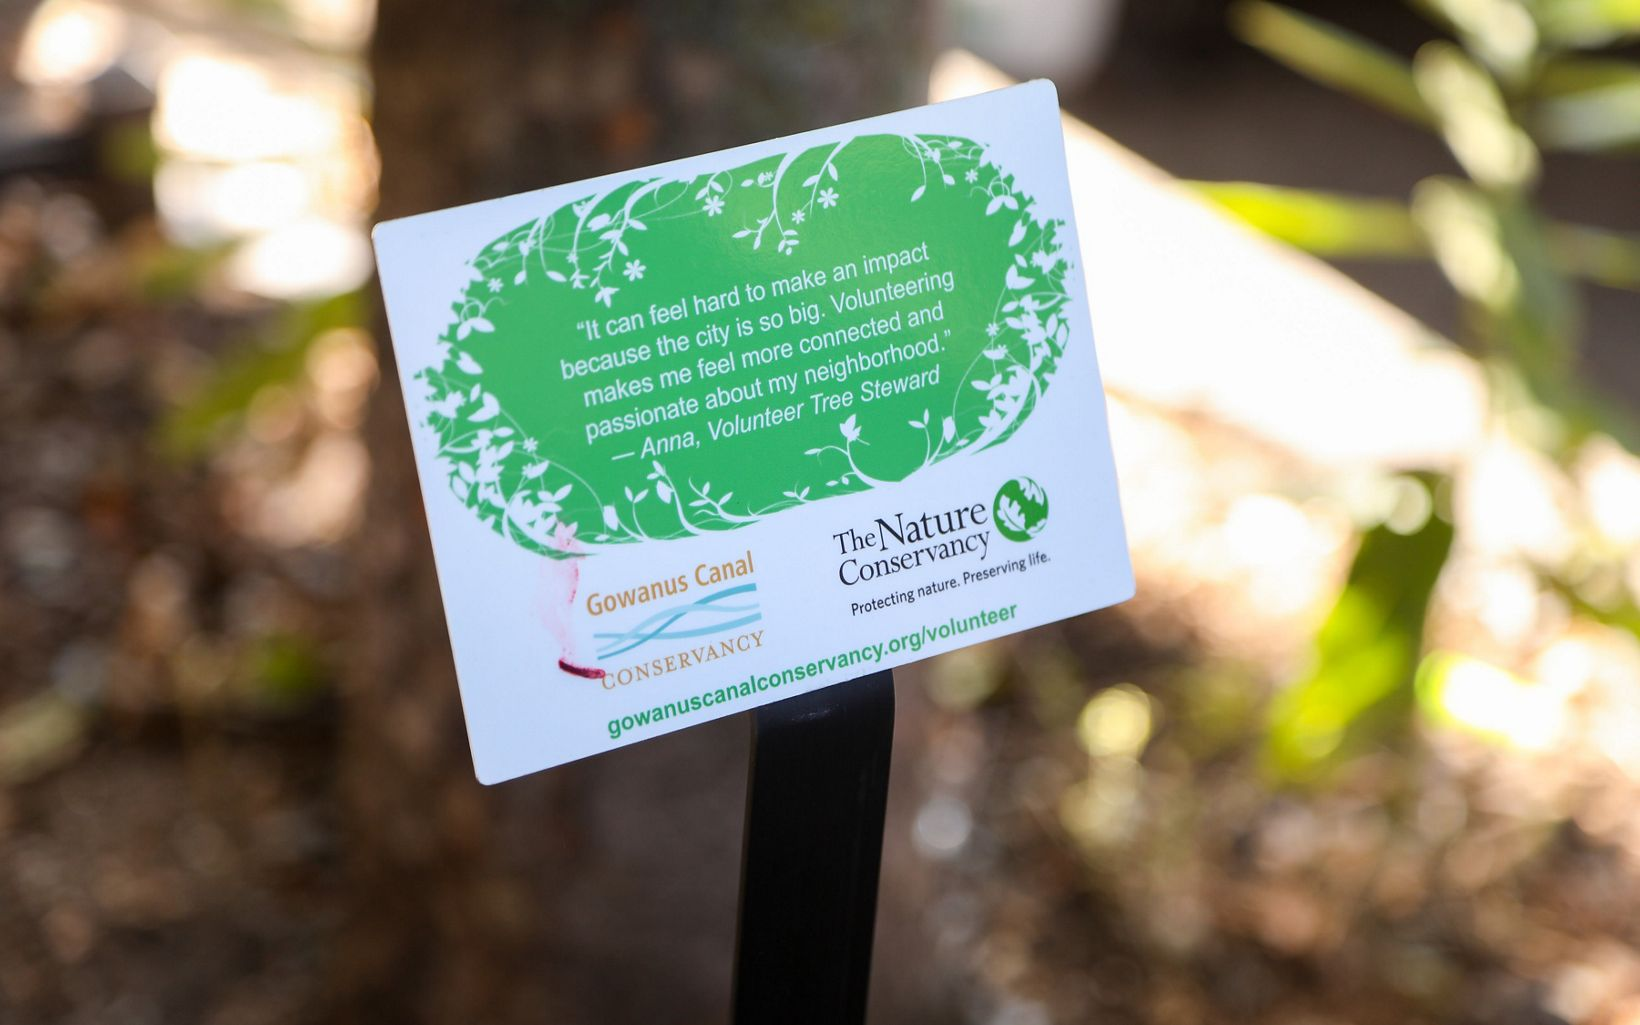 A closeup of a sign with a volunteer tree steward quote with the logos of The Nature Conservancy and Gowanus Canal Conservancy in view.